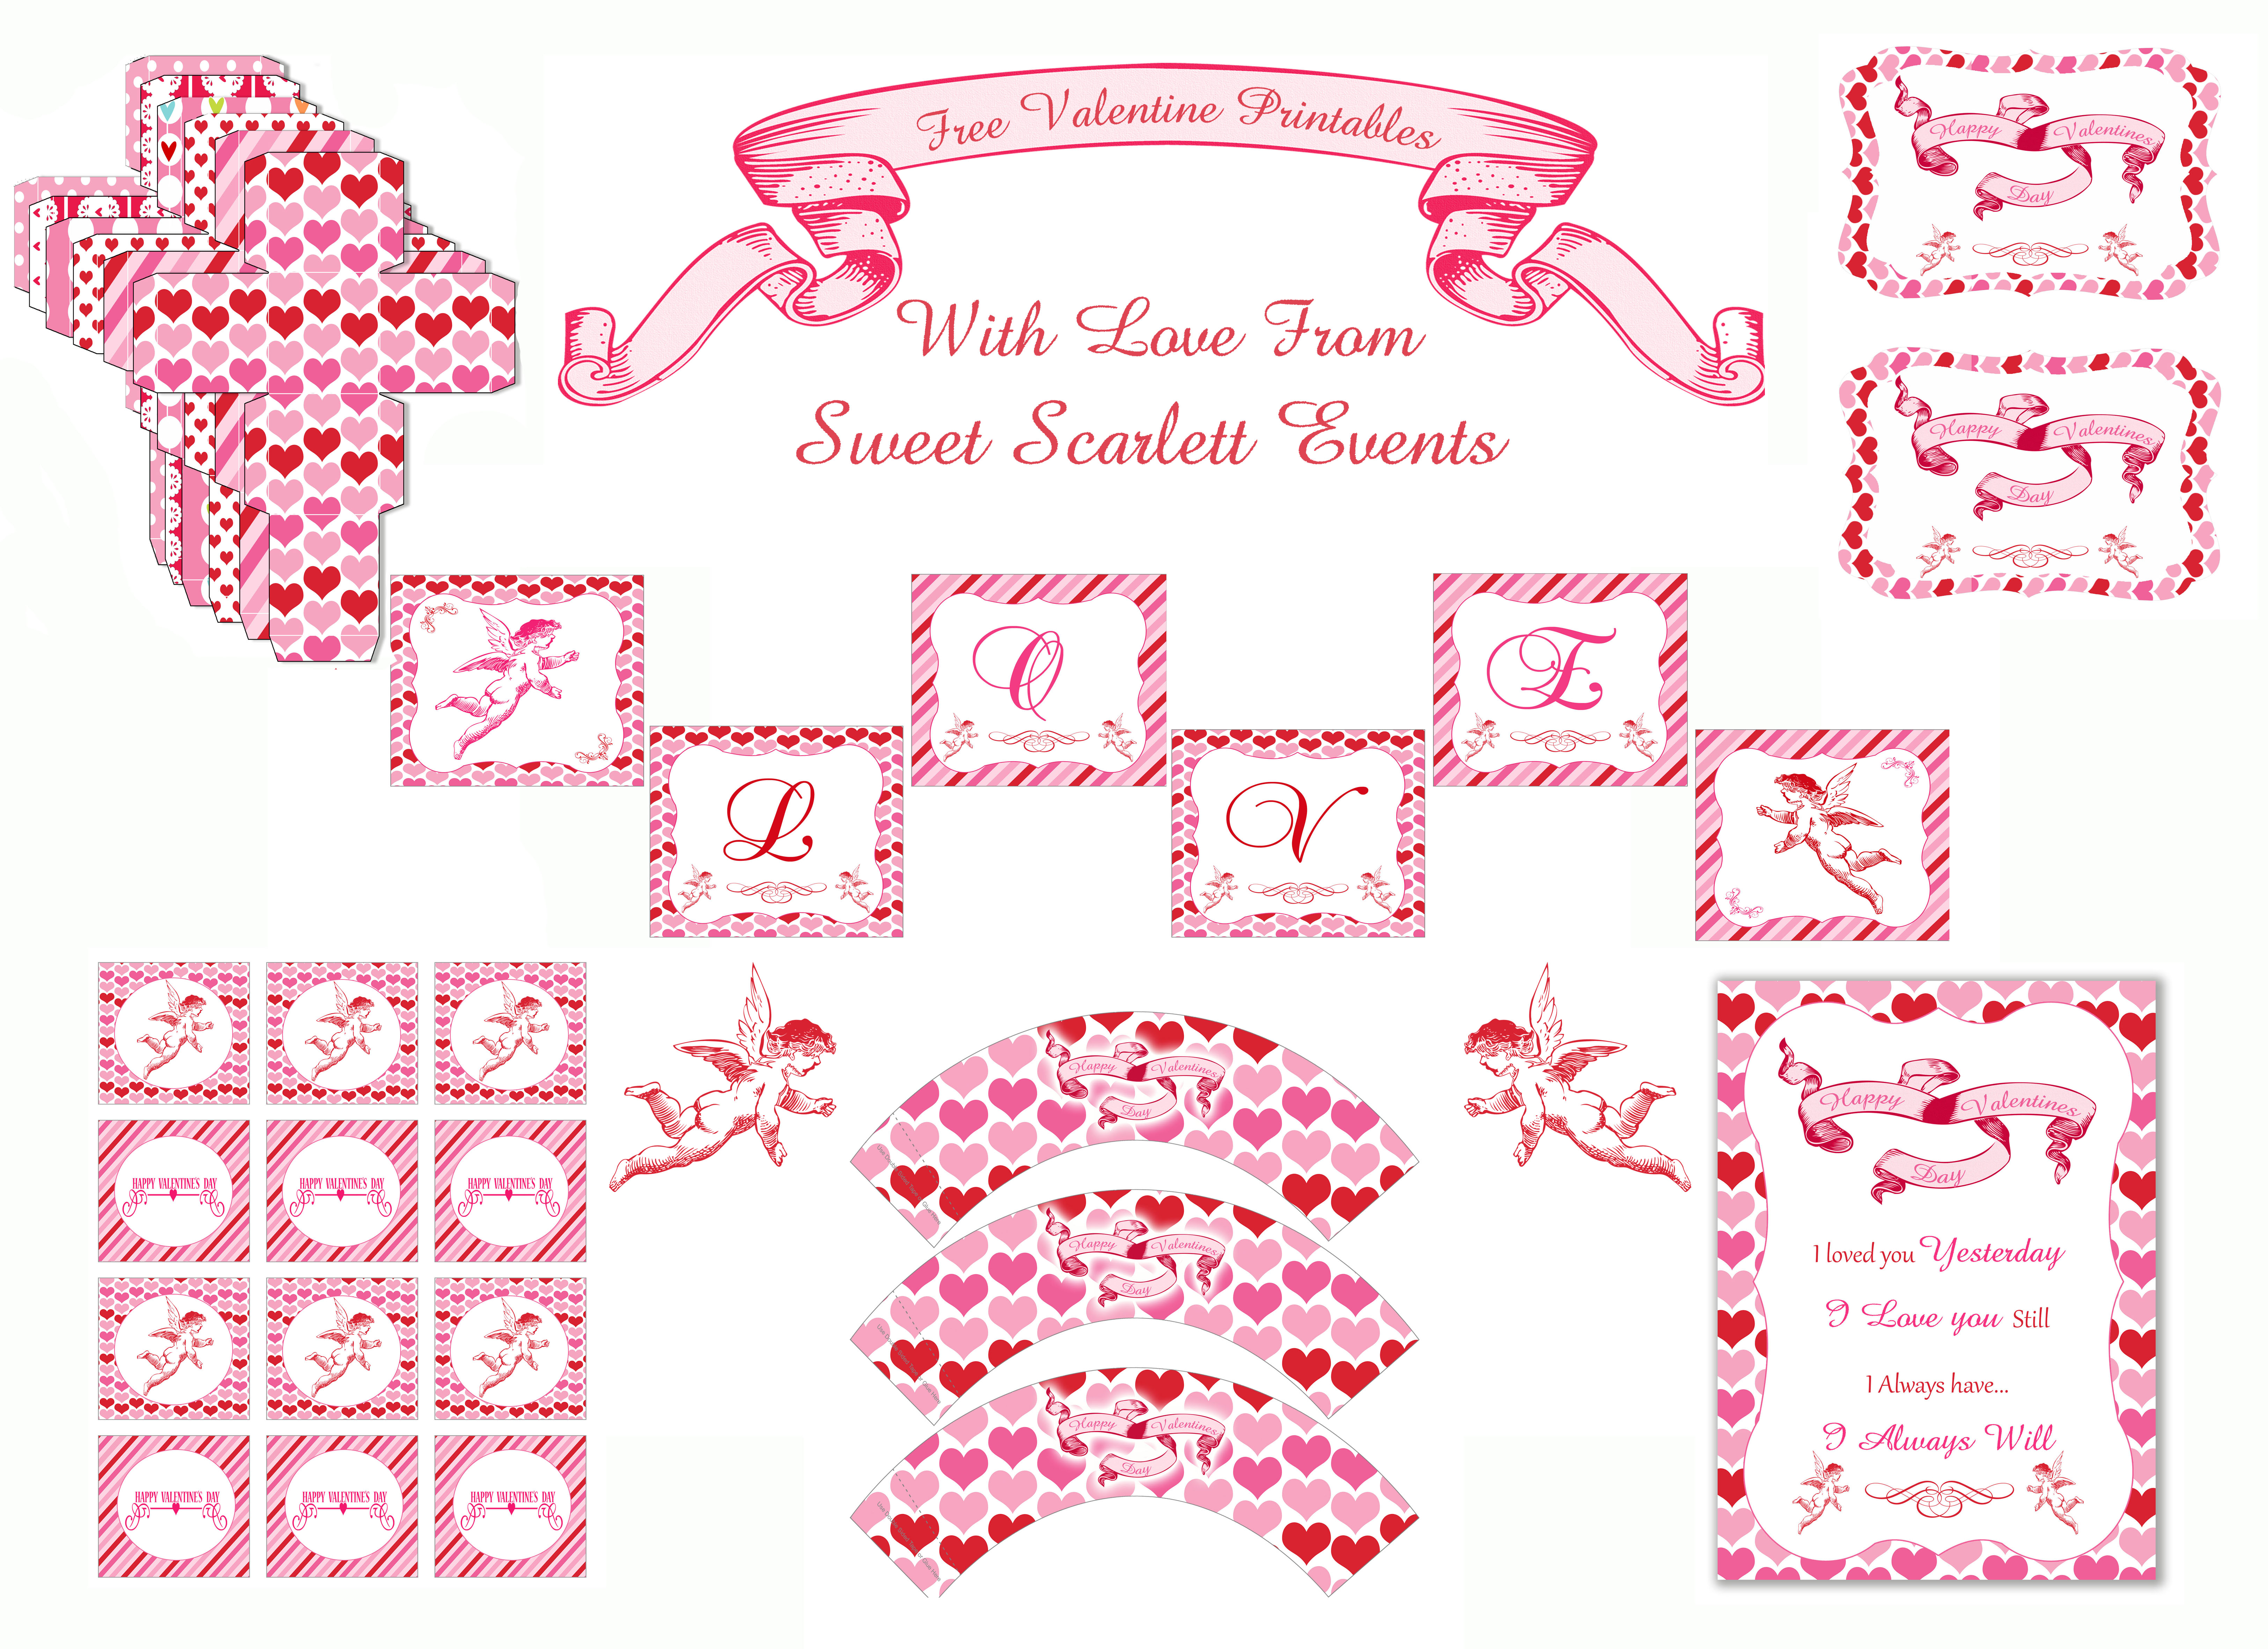 6 Images of Valentine's Day Free Printables